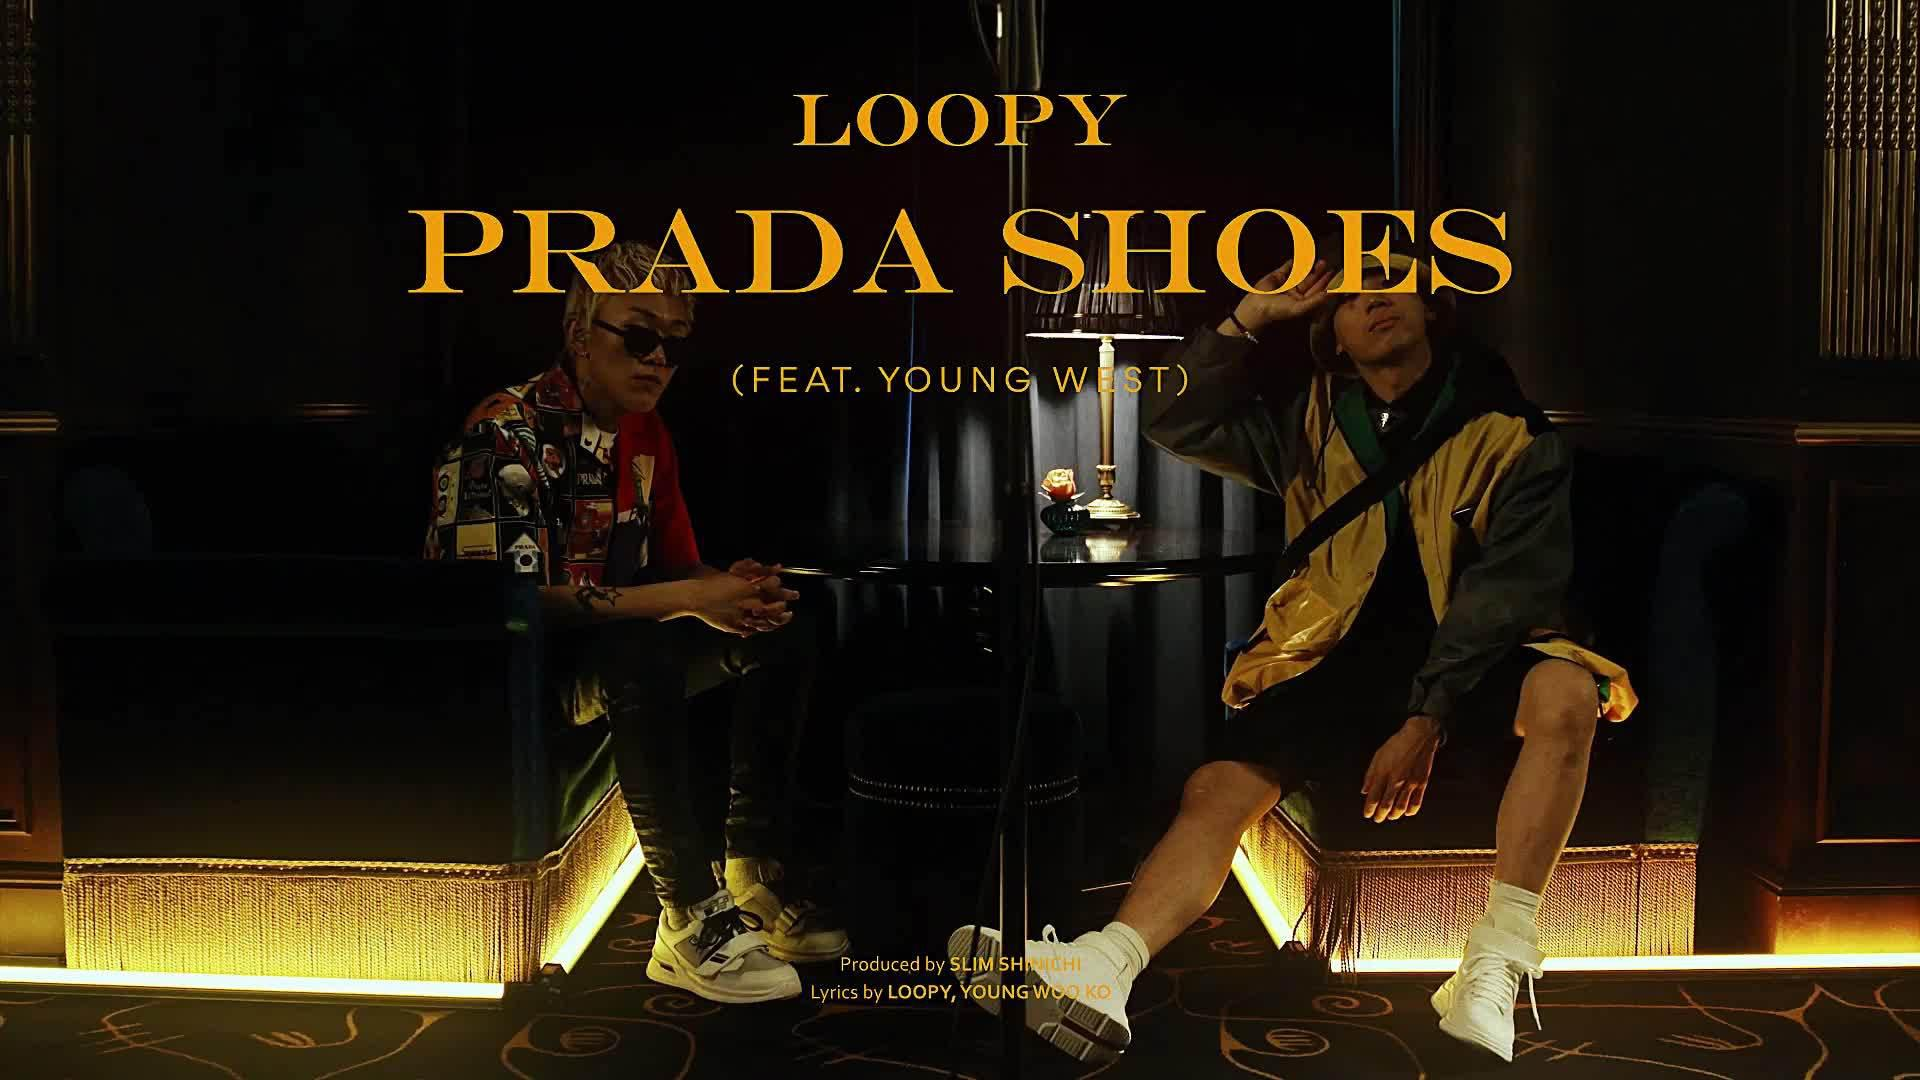 VIDEO 「中字LIVE」LOOPY - PRADA SHOES (FEAT. YOUNG WEST) cr